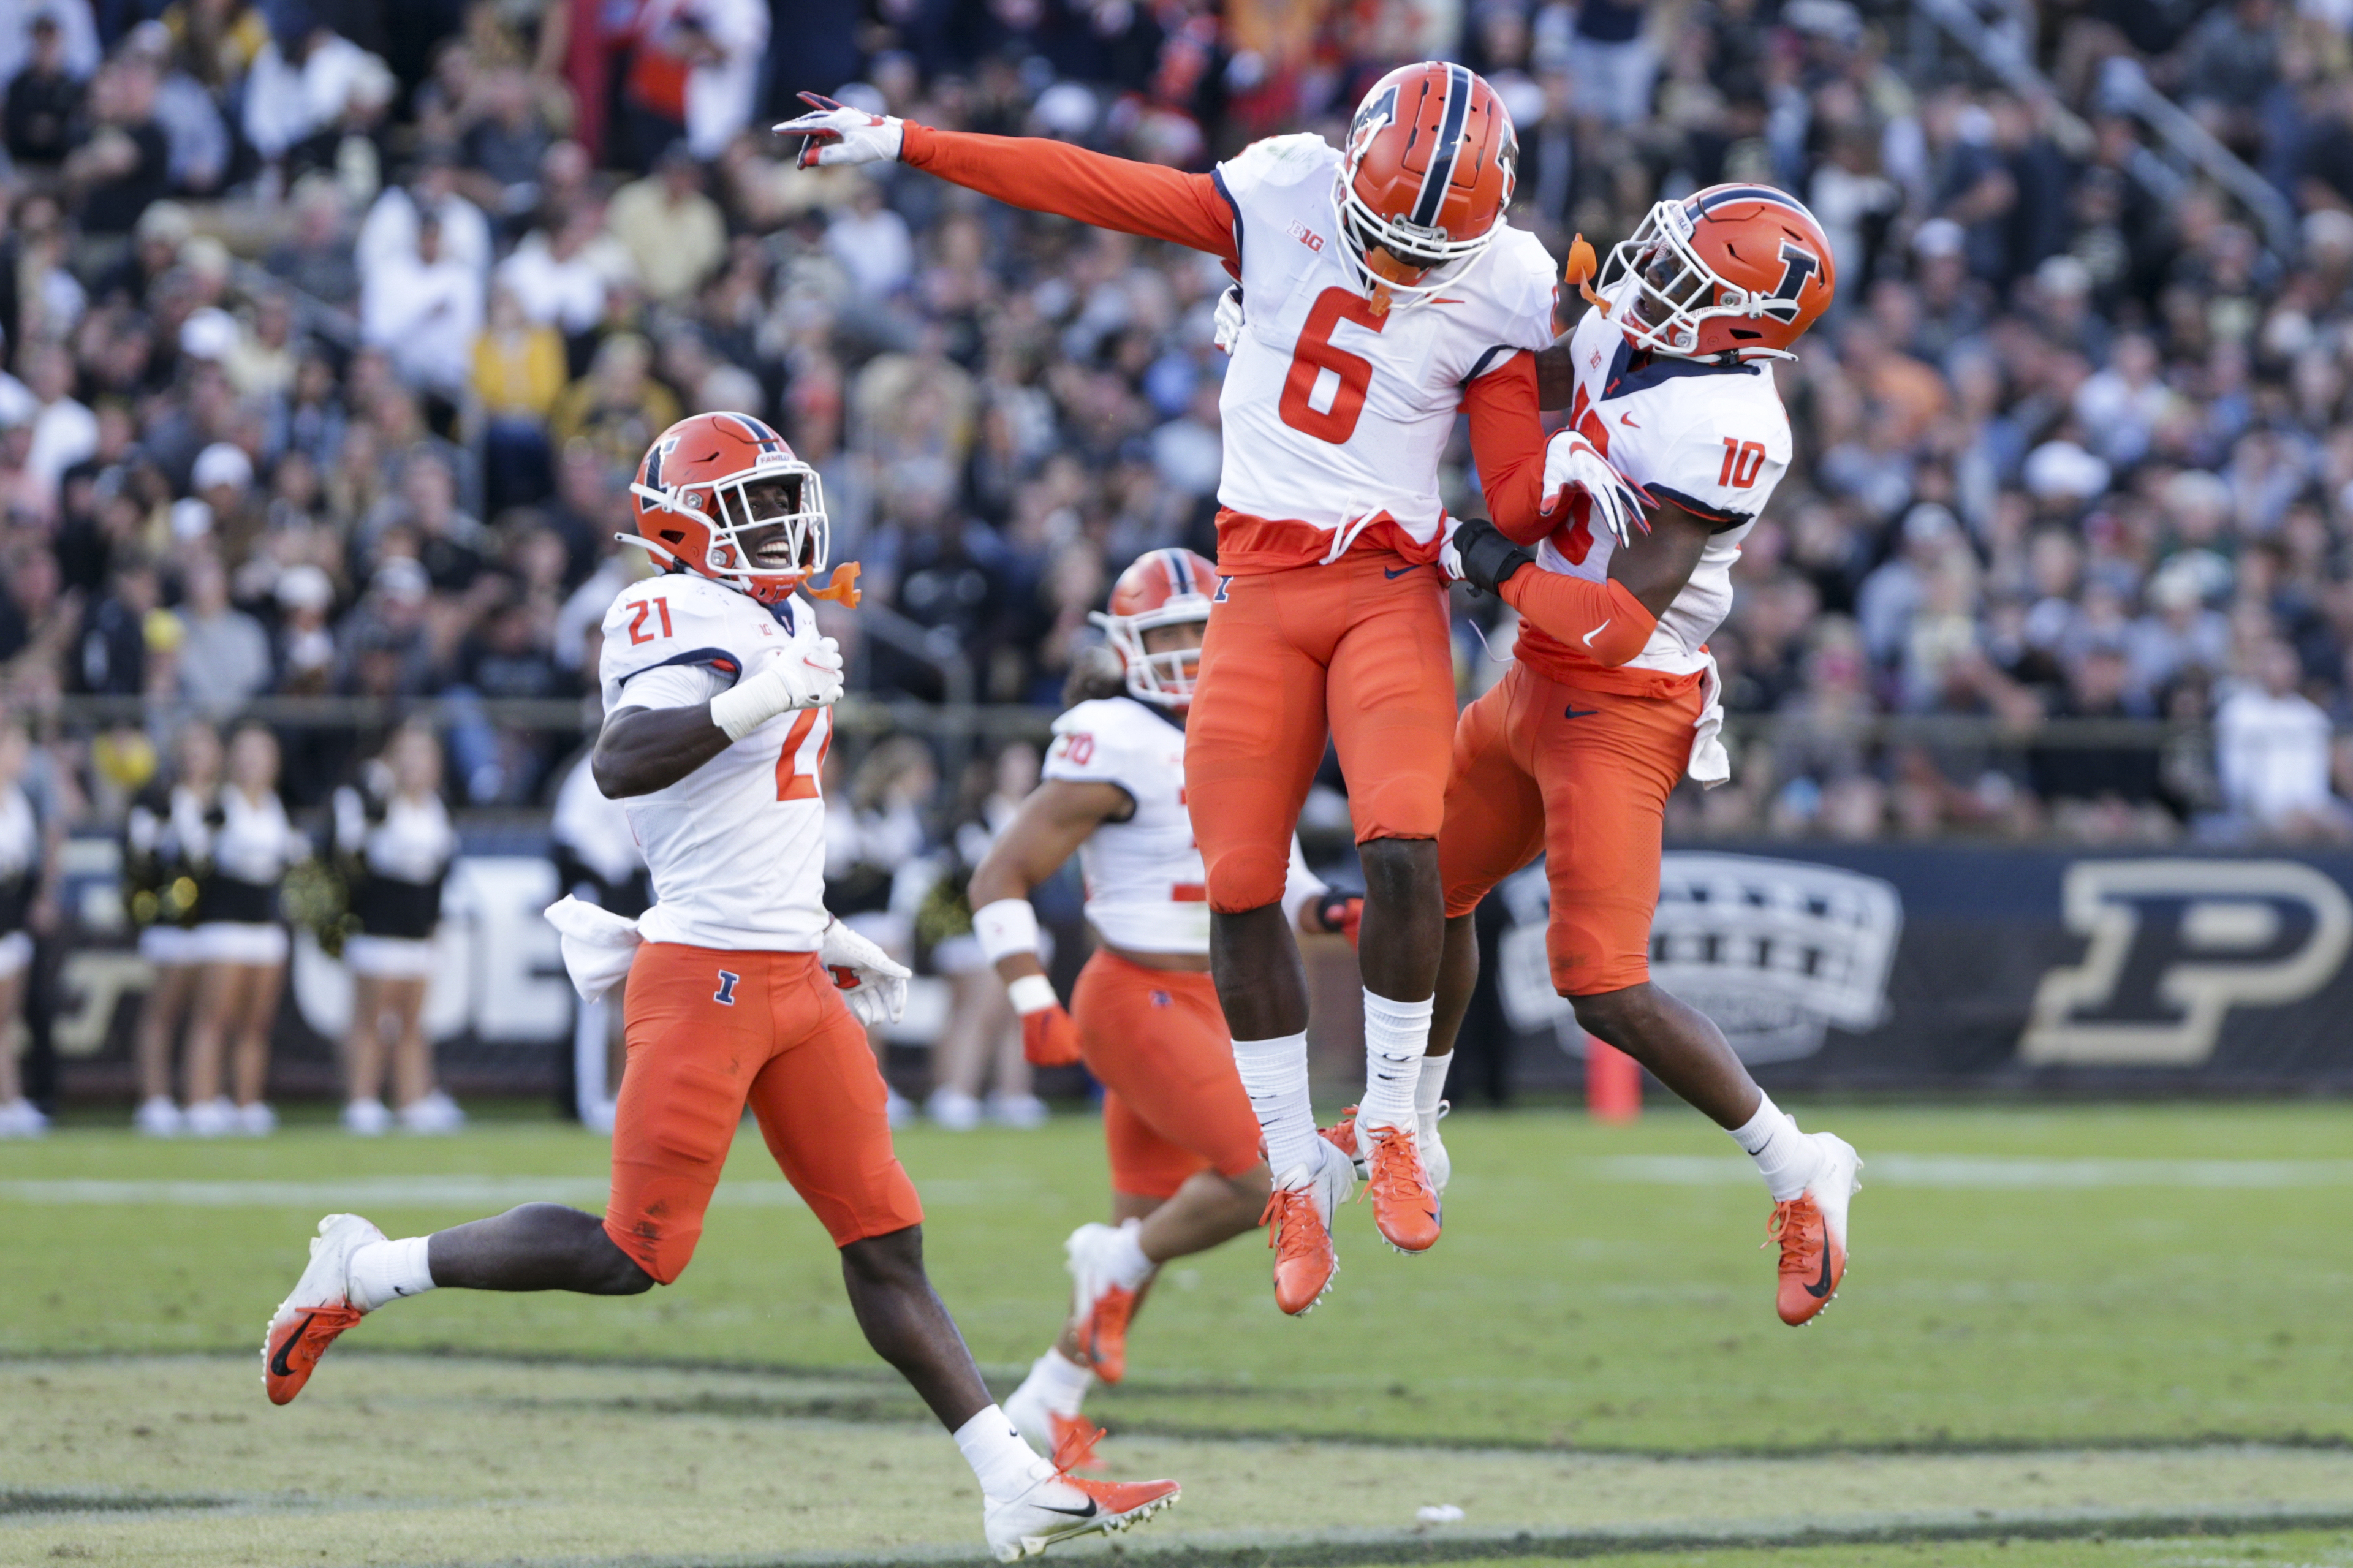 Illinois wide receivers Deuce Spann (6) and Desmond Dan Jr. (10) celebrate during the fourth quarter of last week's game against Purdue.